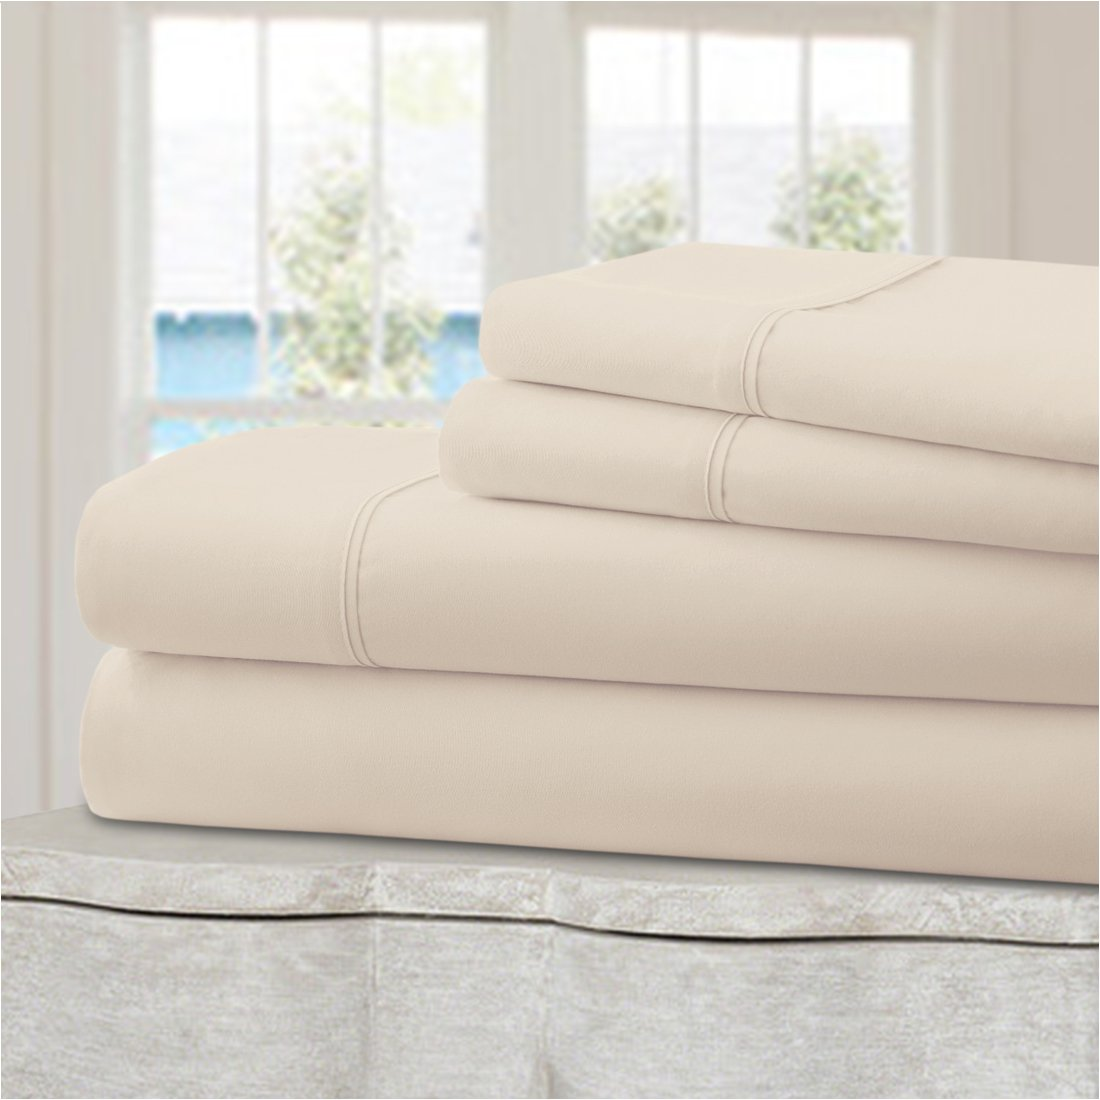 4 Piece Queen, Beige Ideal Linens Bed Sheet Set